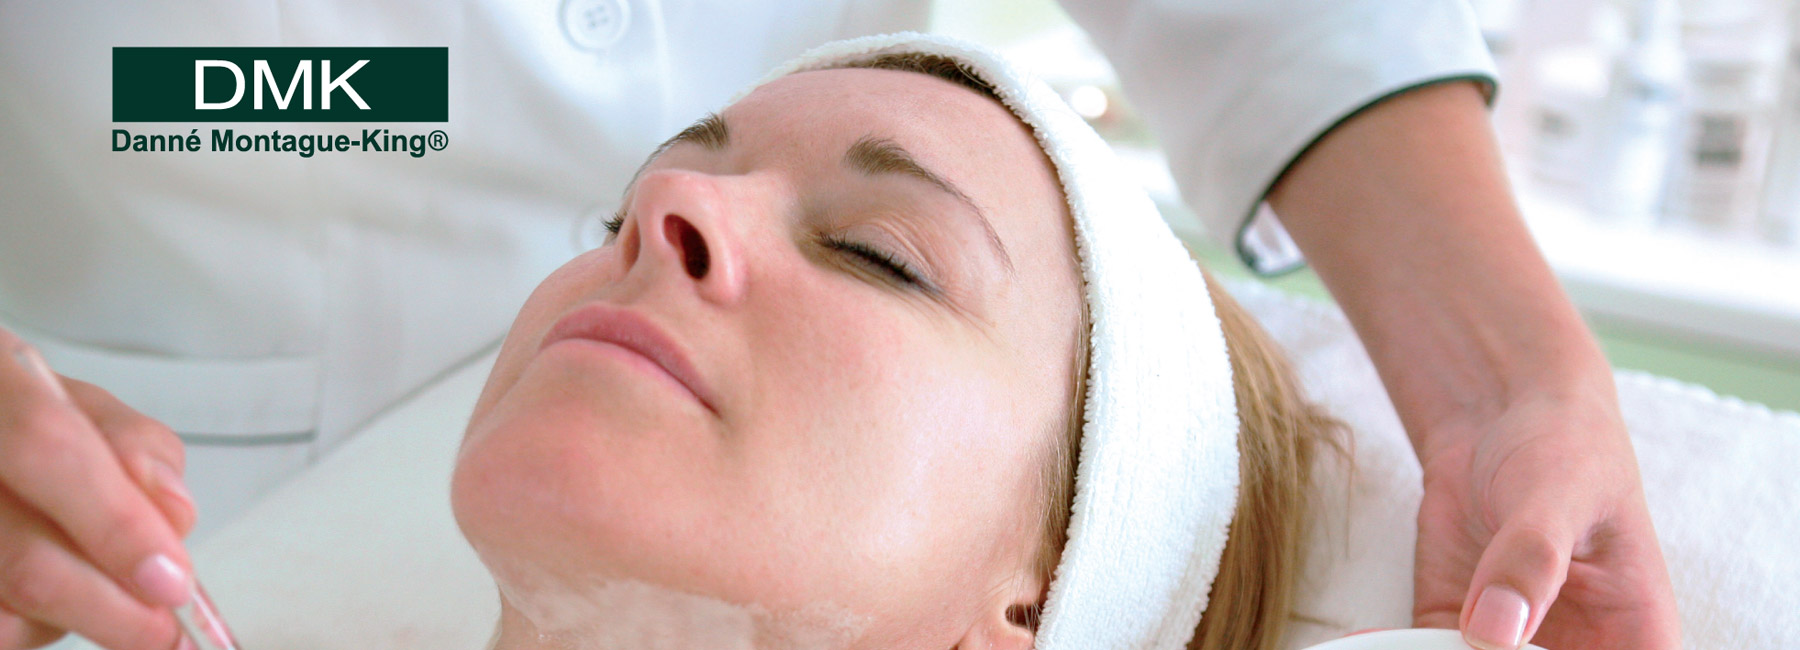 Charisma Skin Studio Stirling - Experts in Skin and Beauty